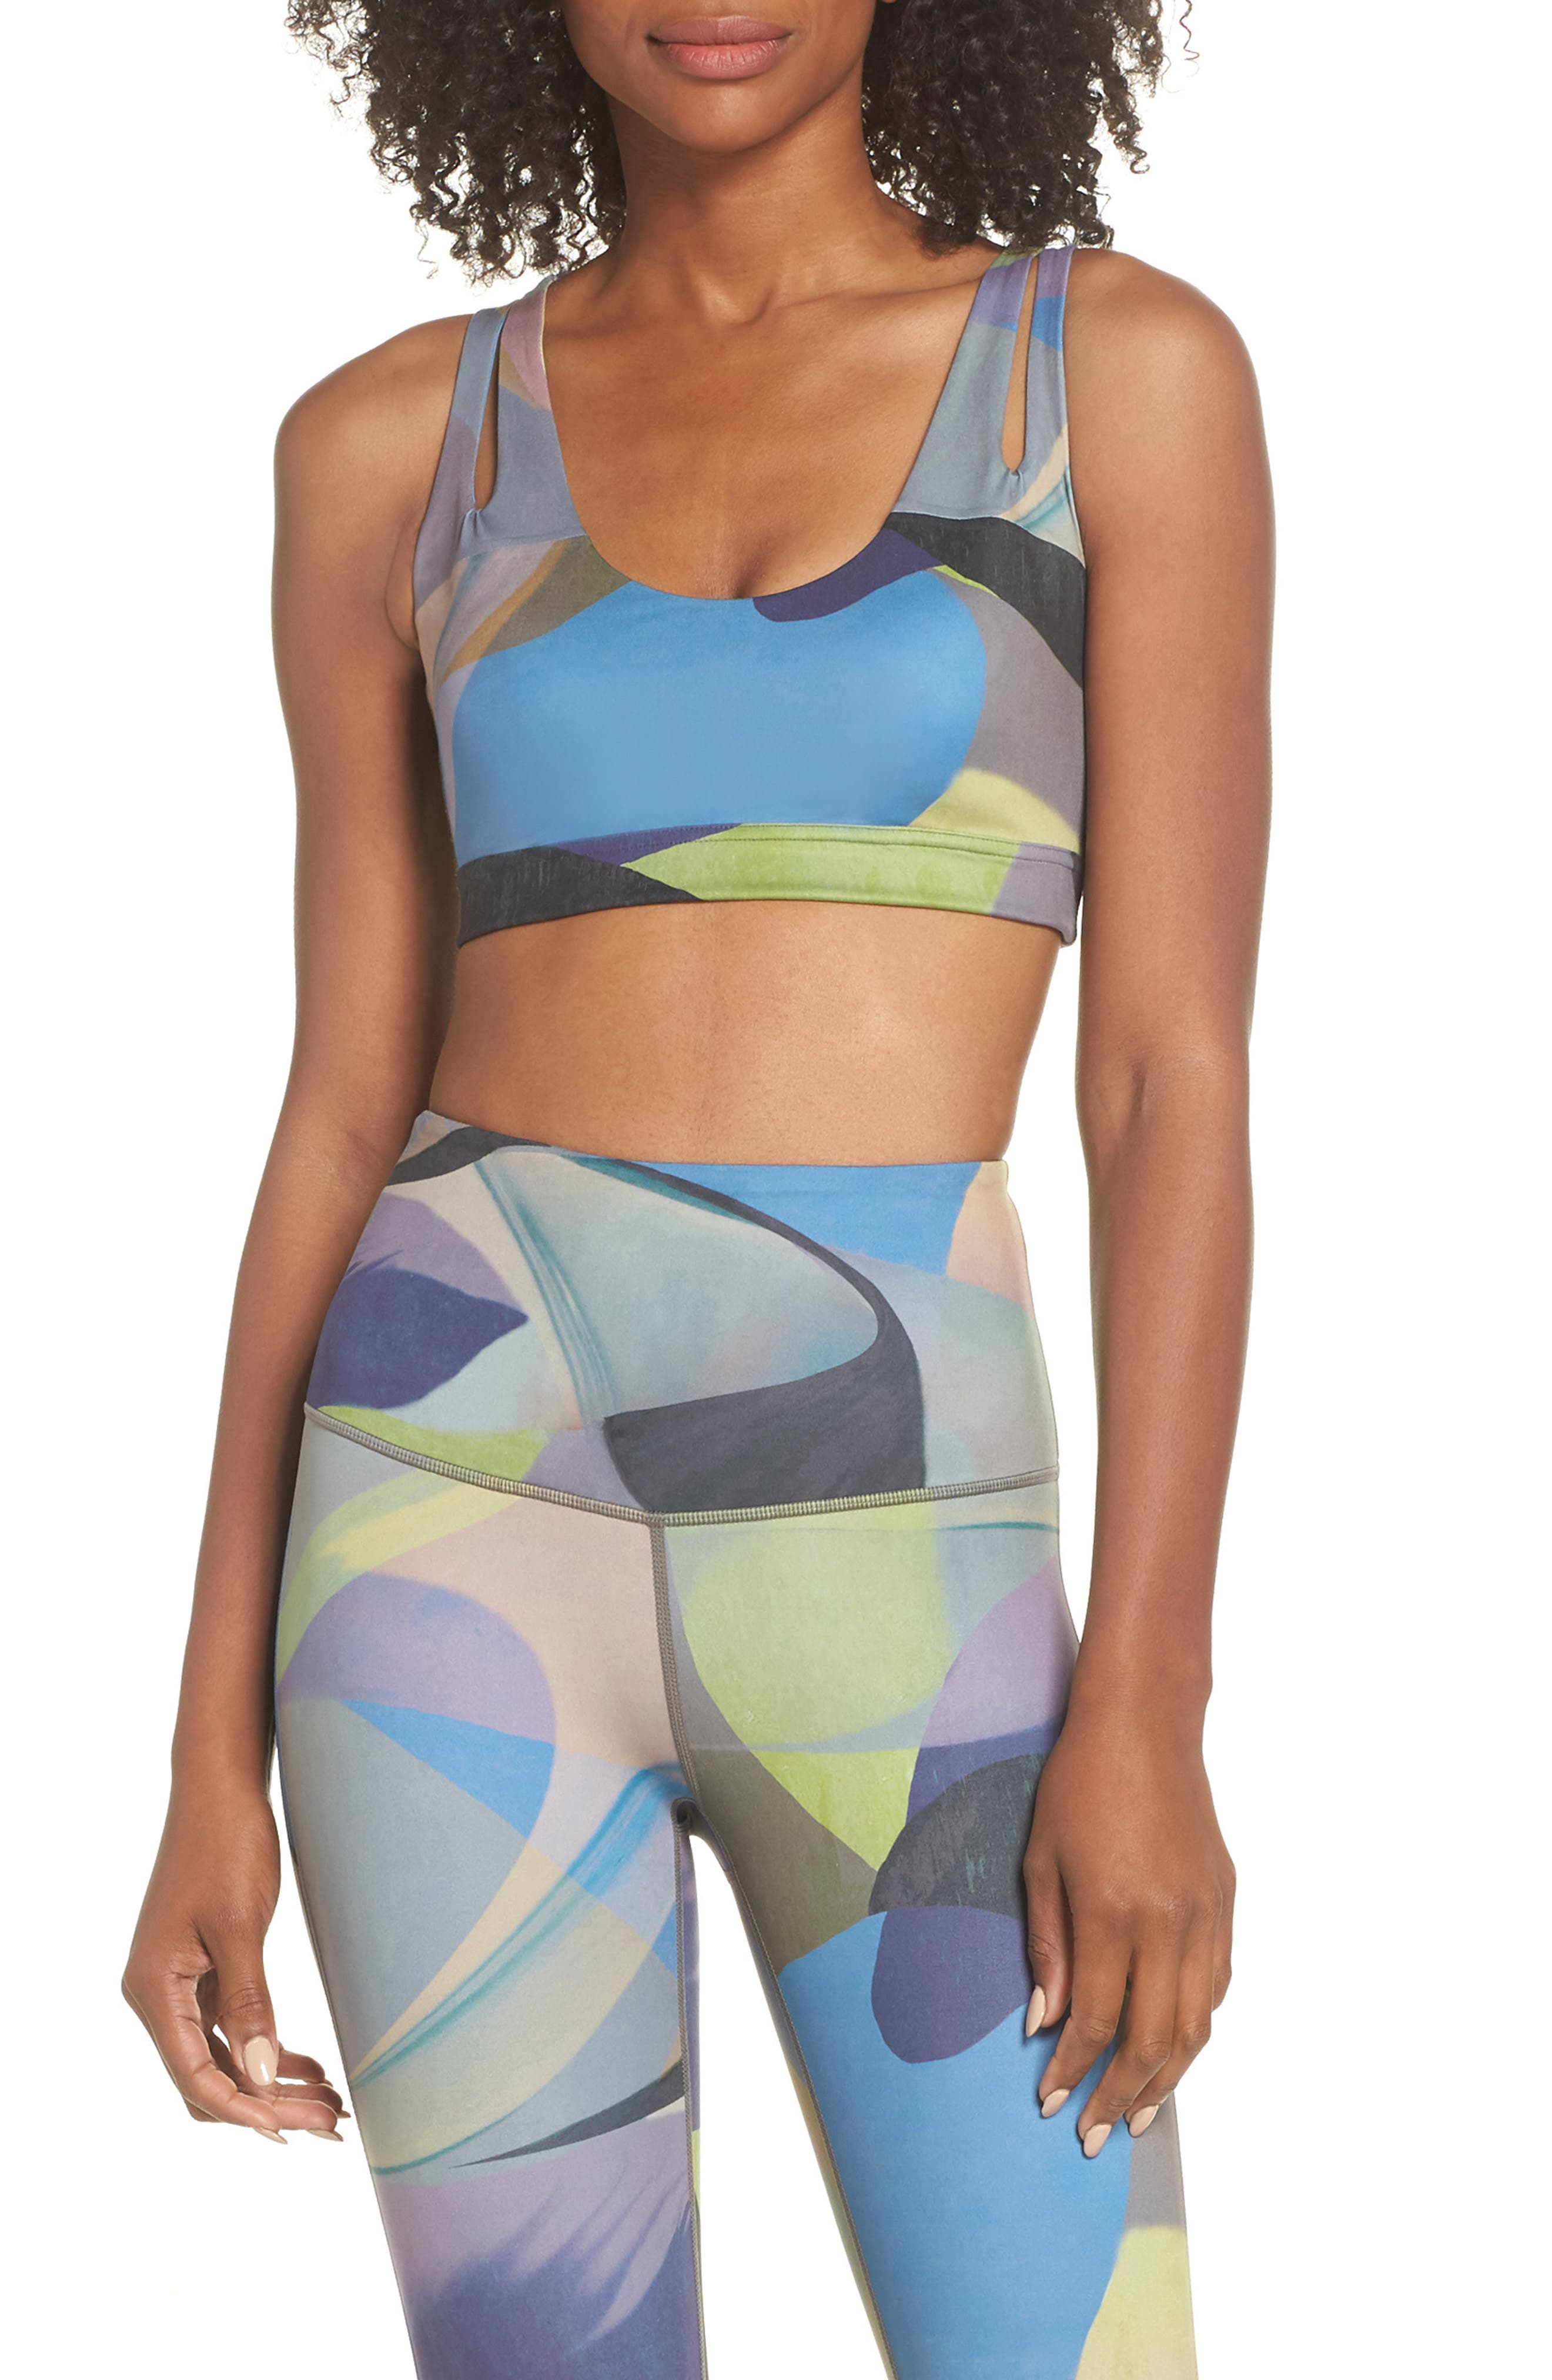 Lita Recycled Dual Strap Sports Bralette,                         Main,                         color, GREY URBAN ABSTRACT BOTANICAL